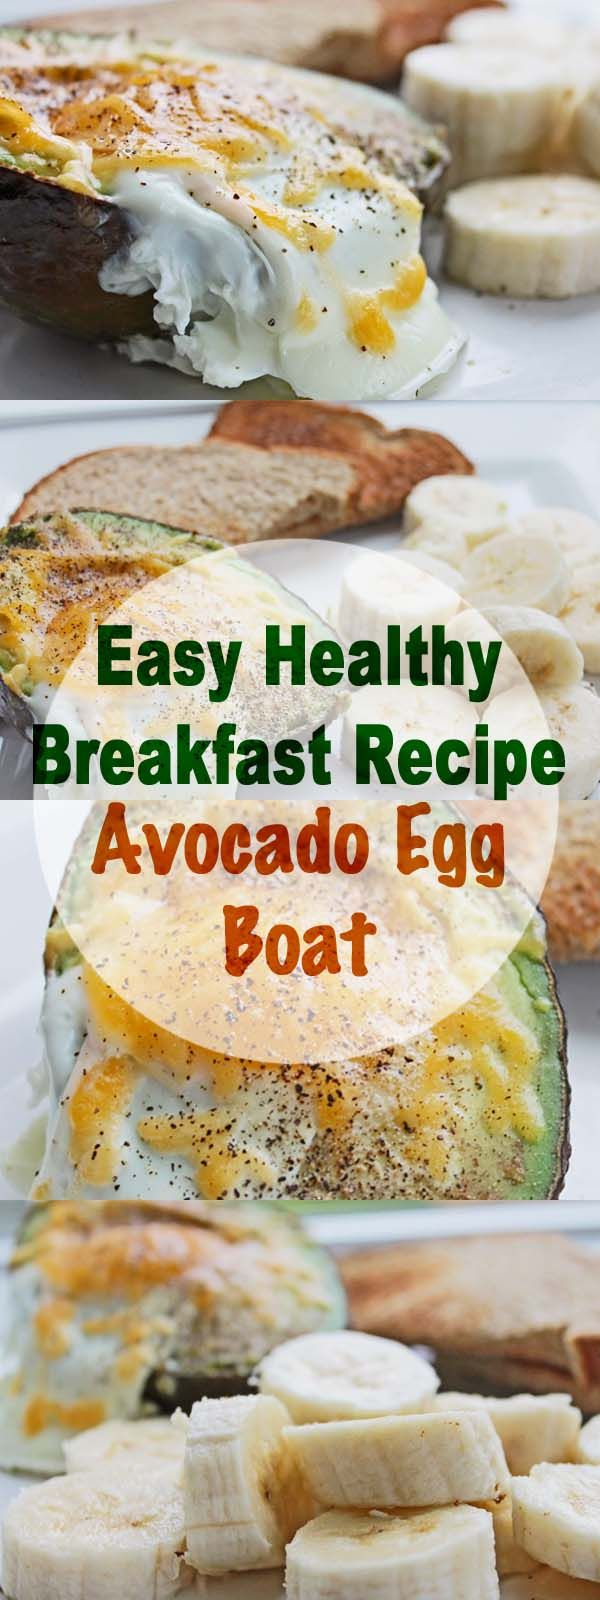 Easy Healthy Breakfast | Recipes and Ideas for Healthy Breakfast Meals: Easy Healthy Breakfast Recipe: Avocado Egg Boat